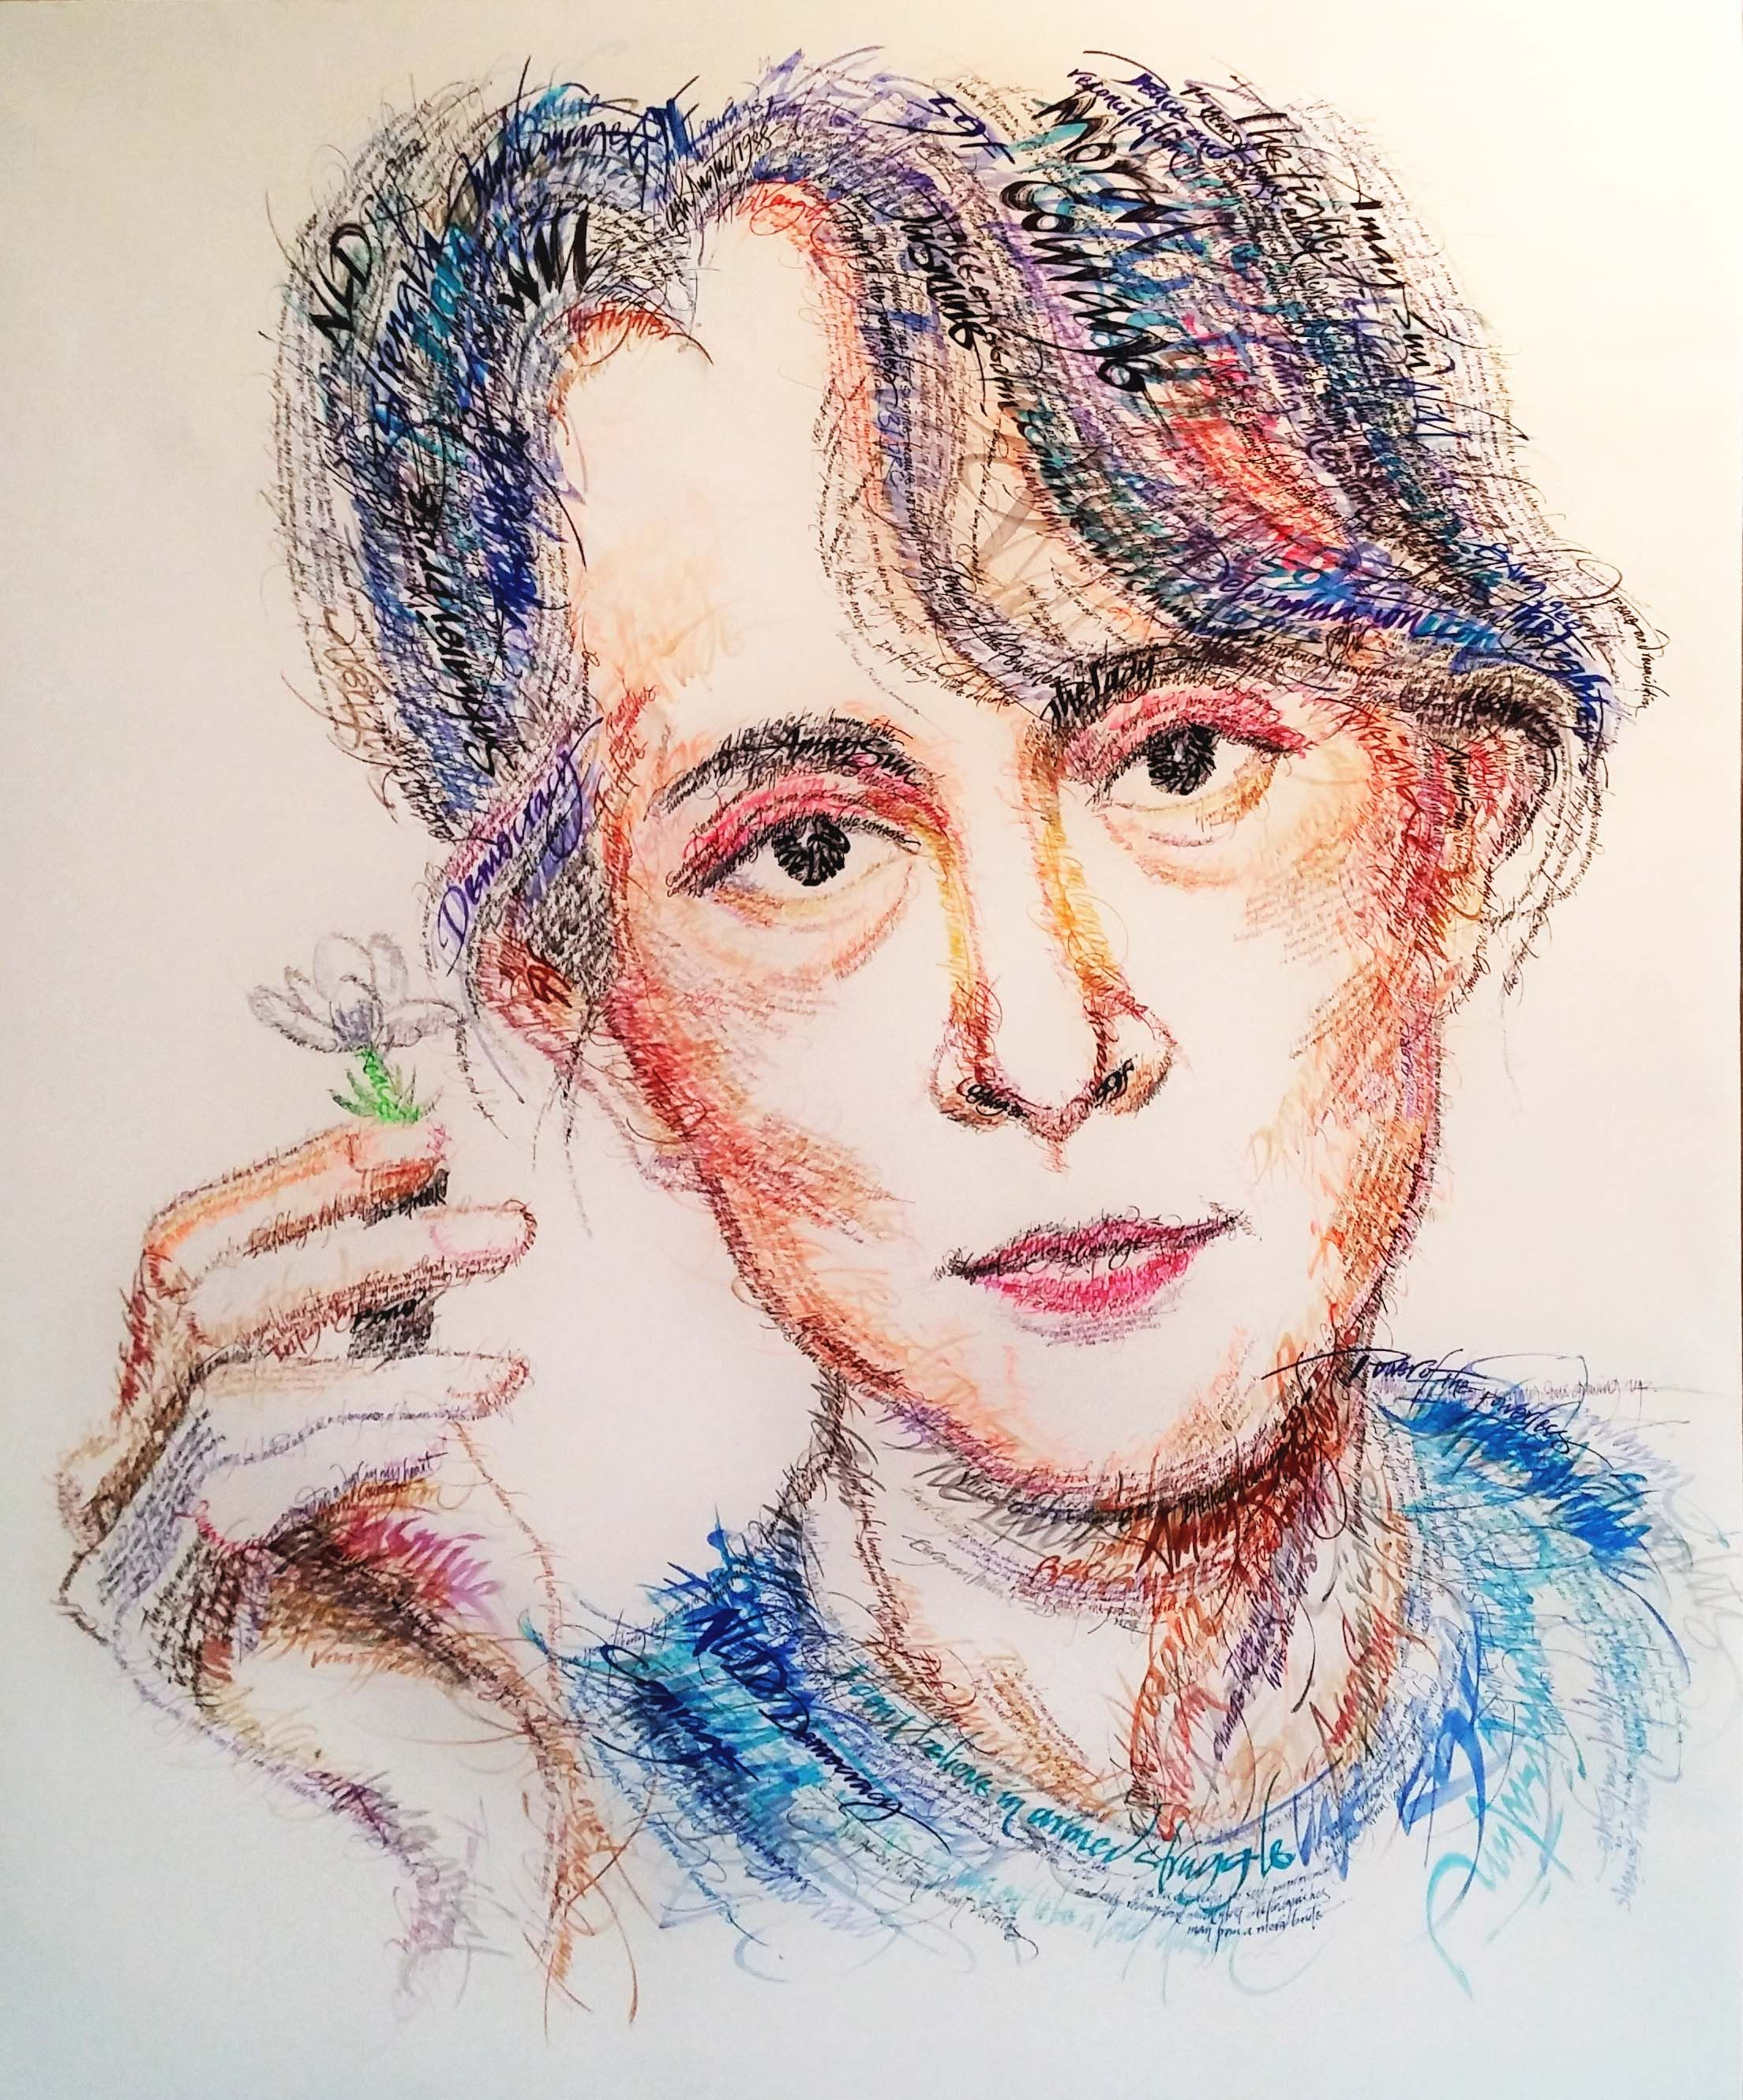 aung san suu kyi let us bring peace and happiness to women aung san suu kyi let us bring peace and happiness to women everywhere by putting a stop to rape and gender violence that create humility and